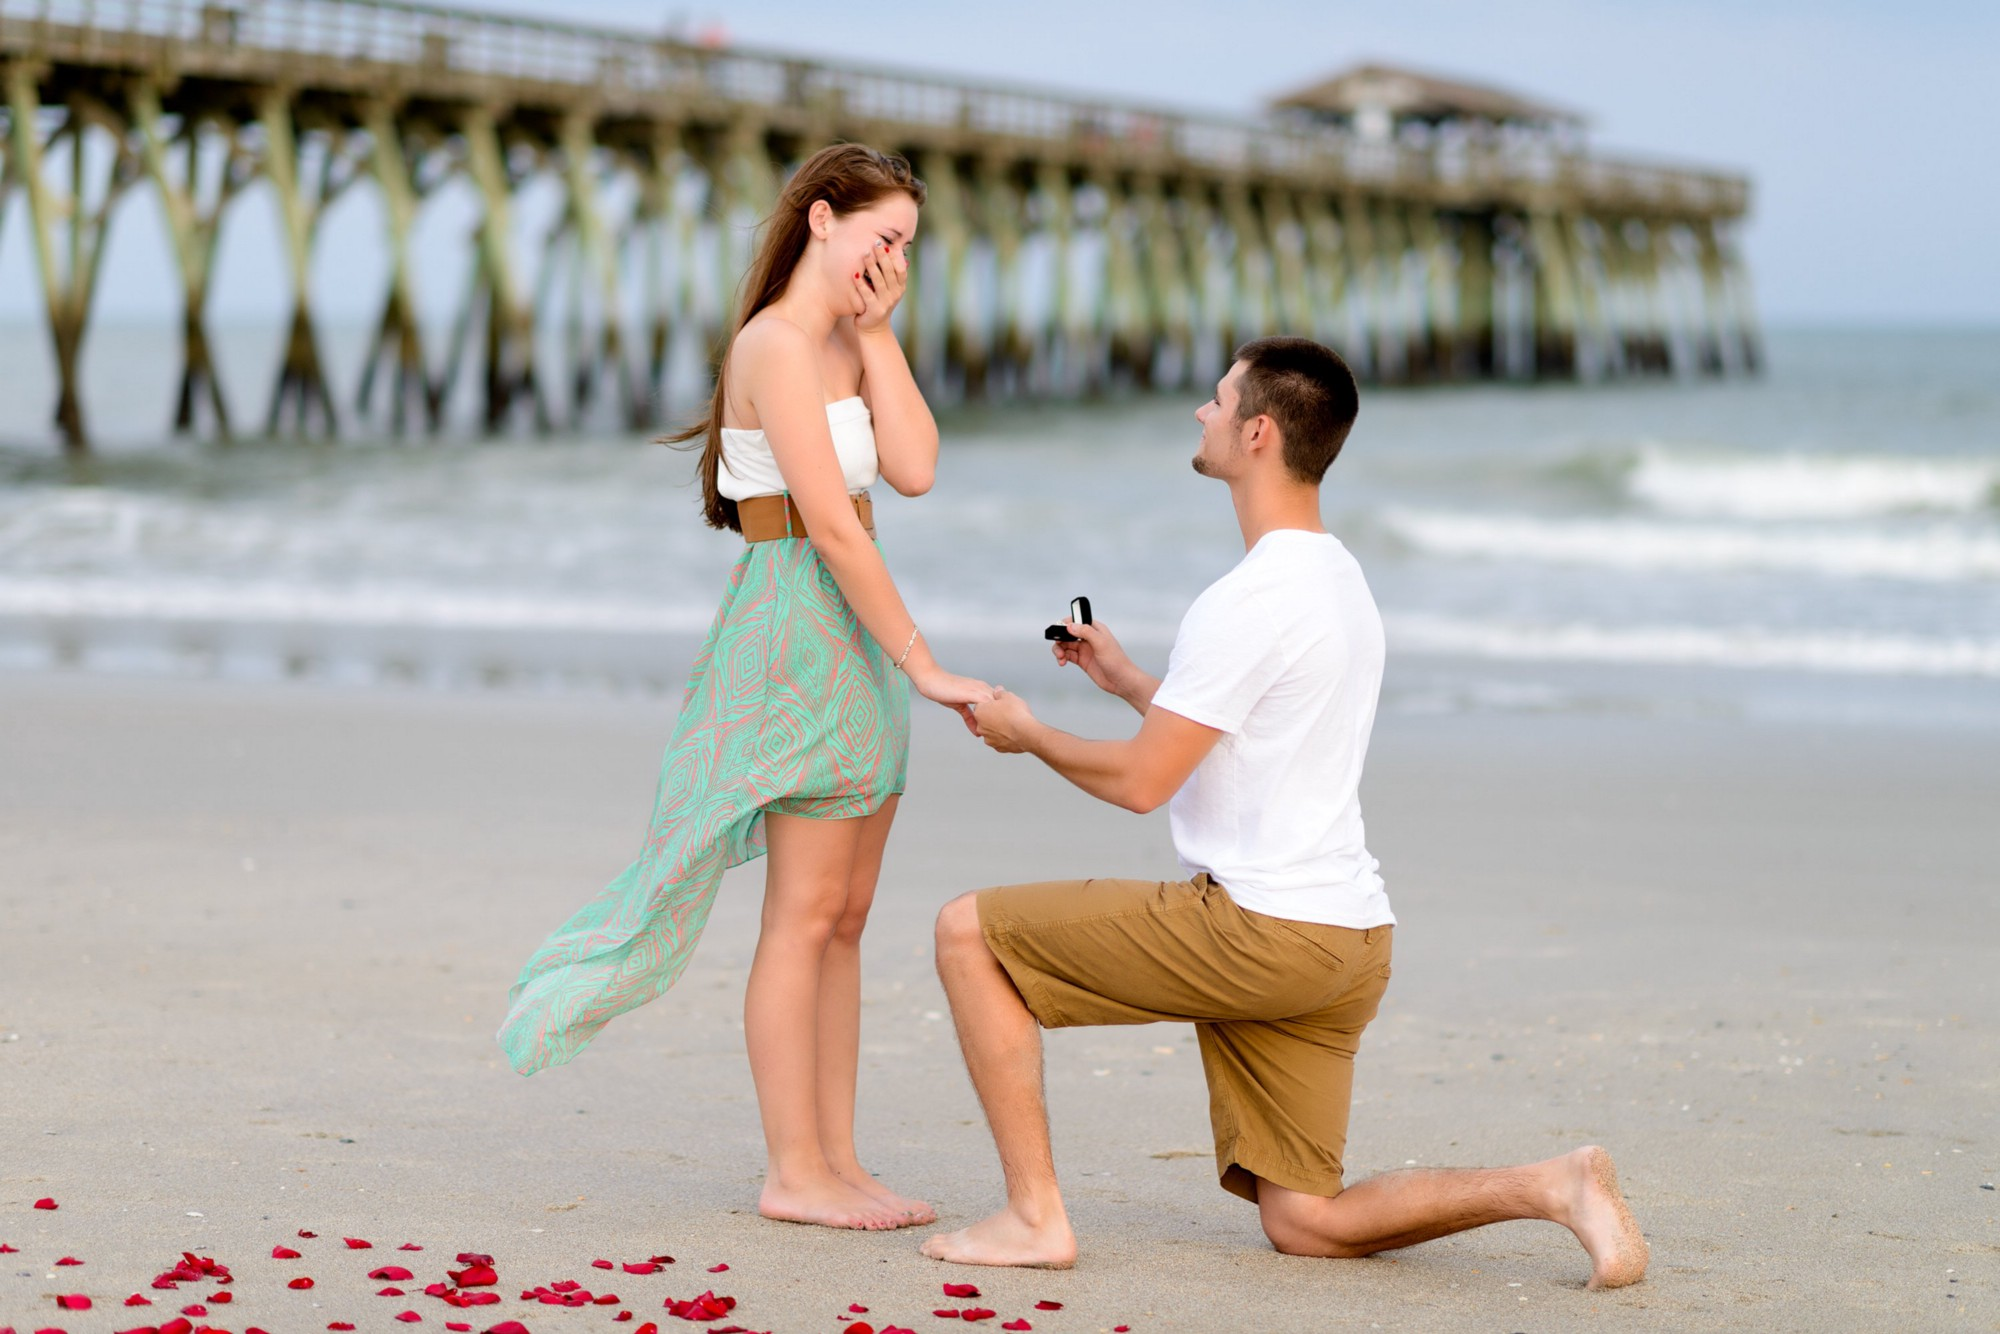 Ladies! Here Are 7 Signs Your Man May Soon Propose Marriage